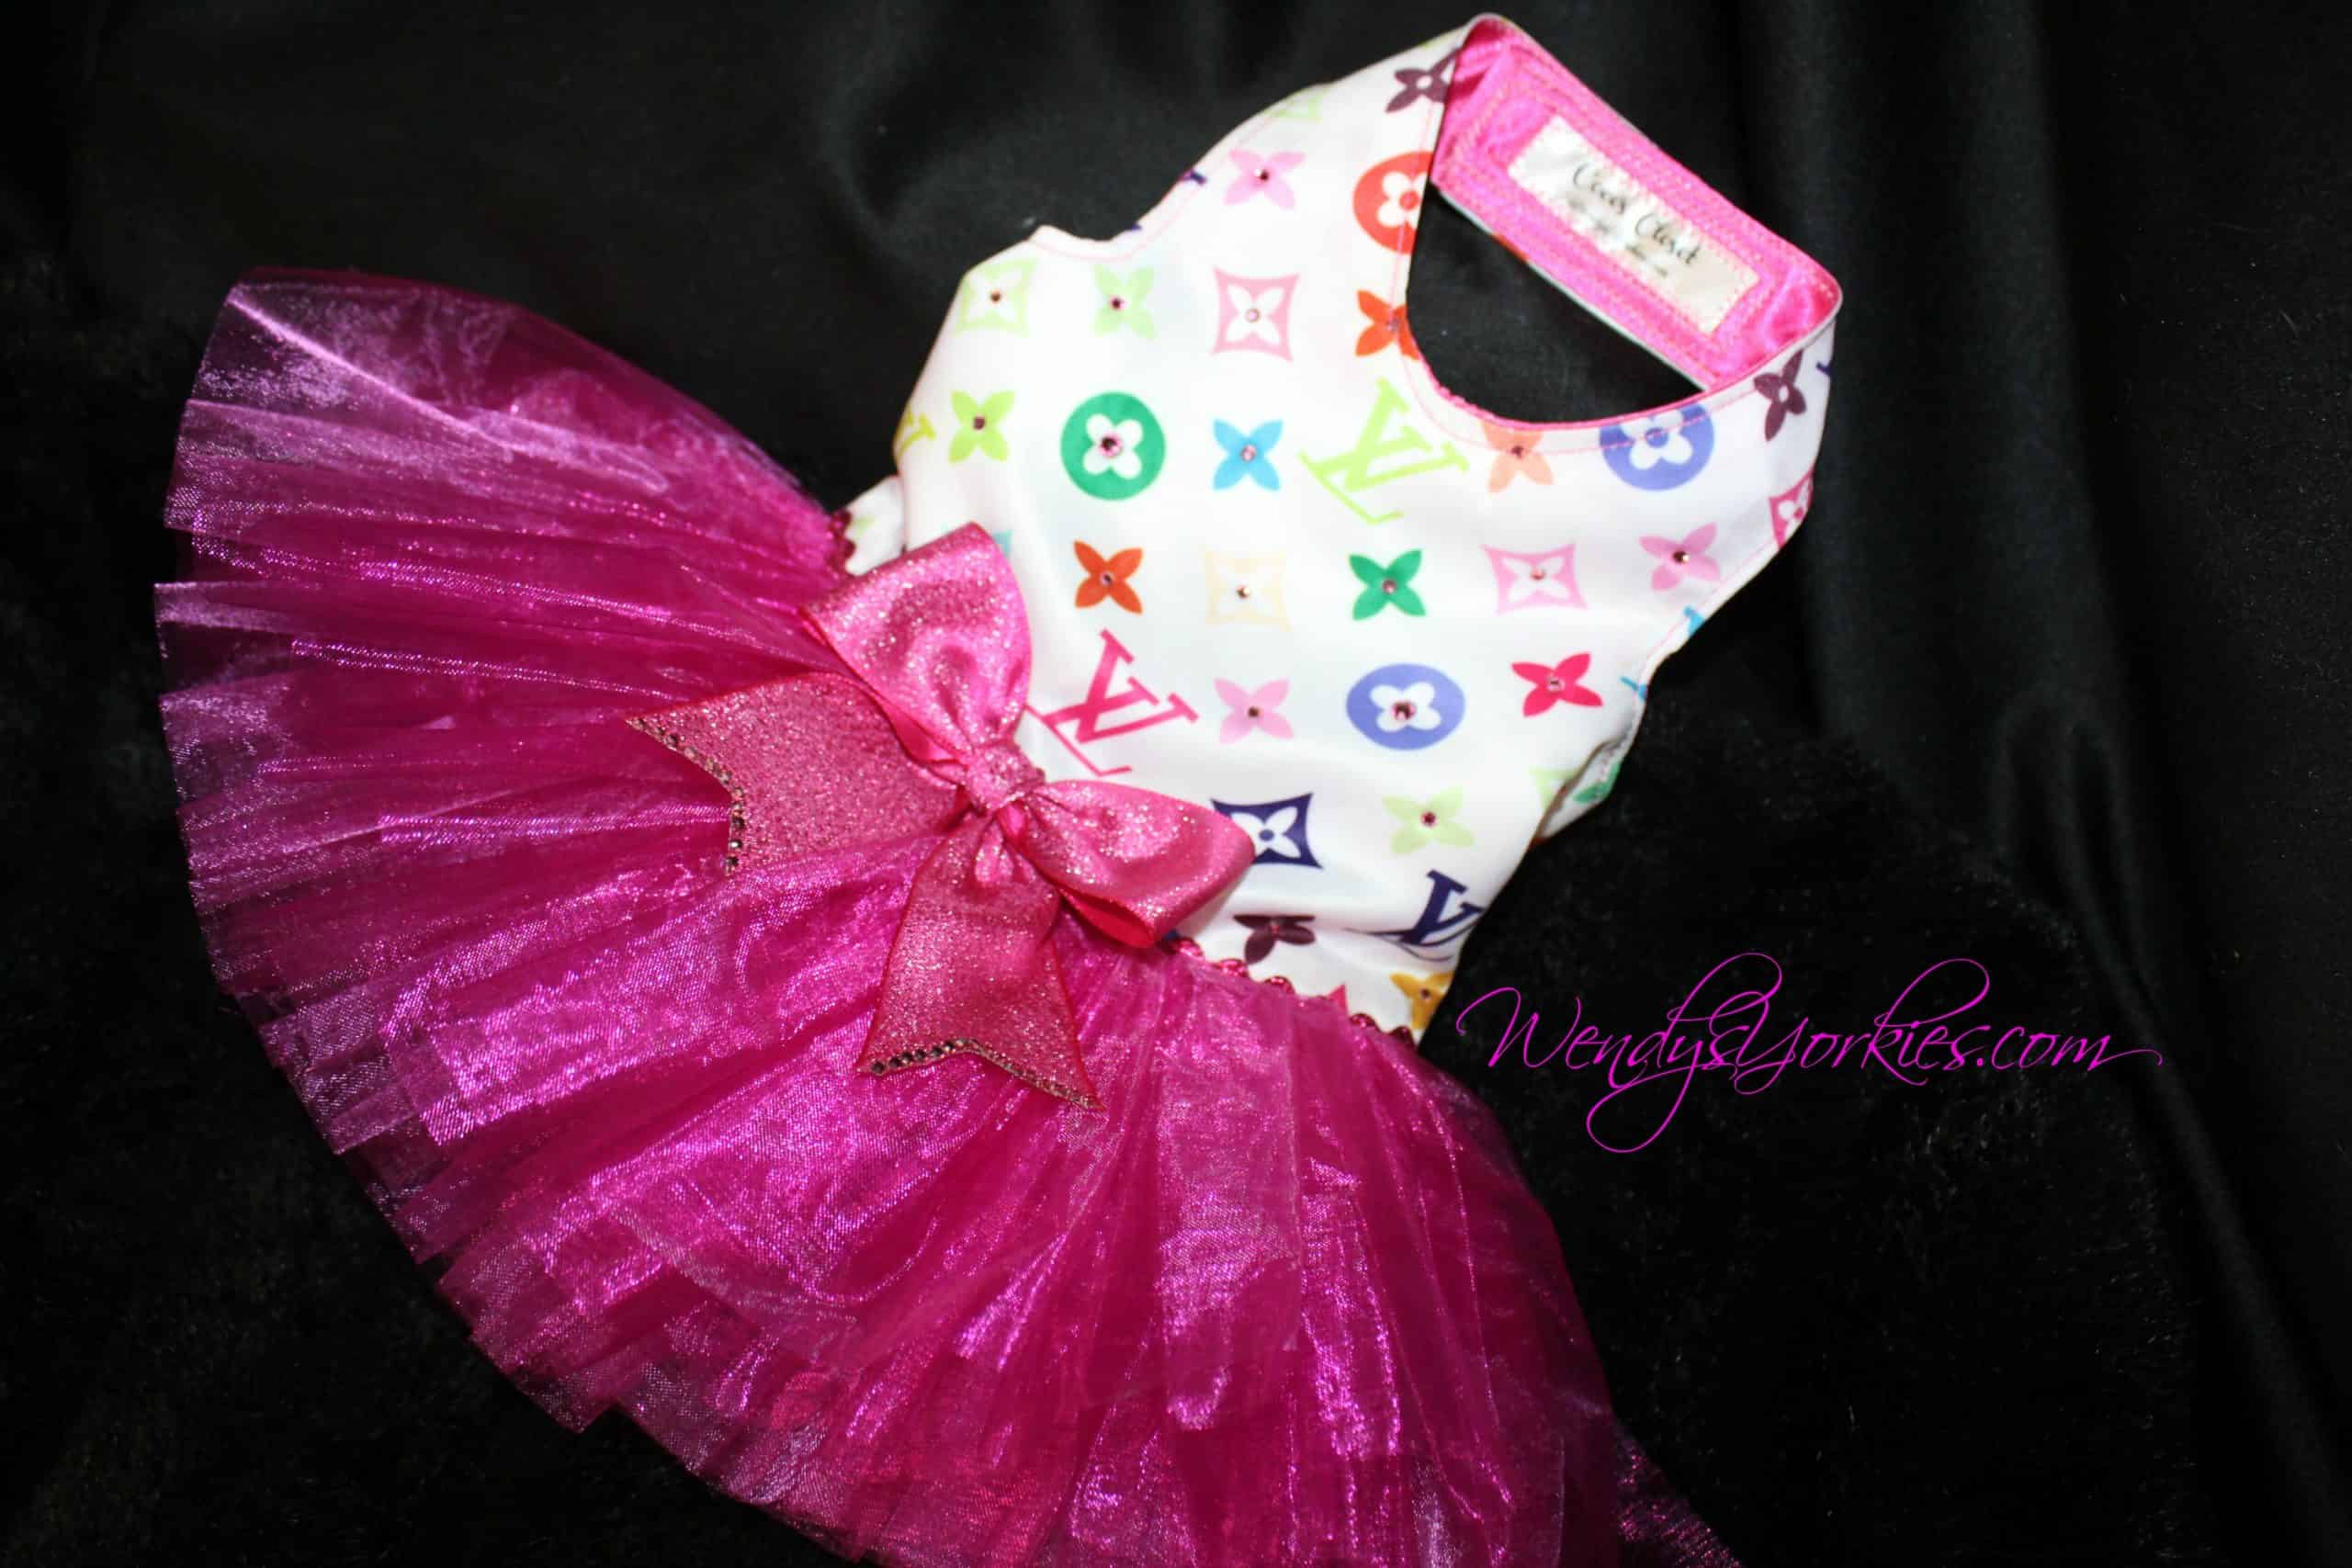 Colorful LV Dog tutu, WendysYorkies.com